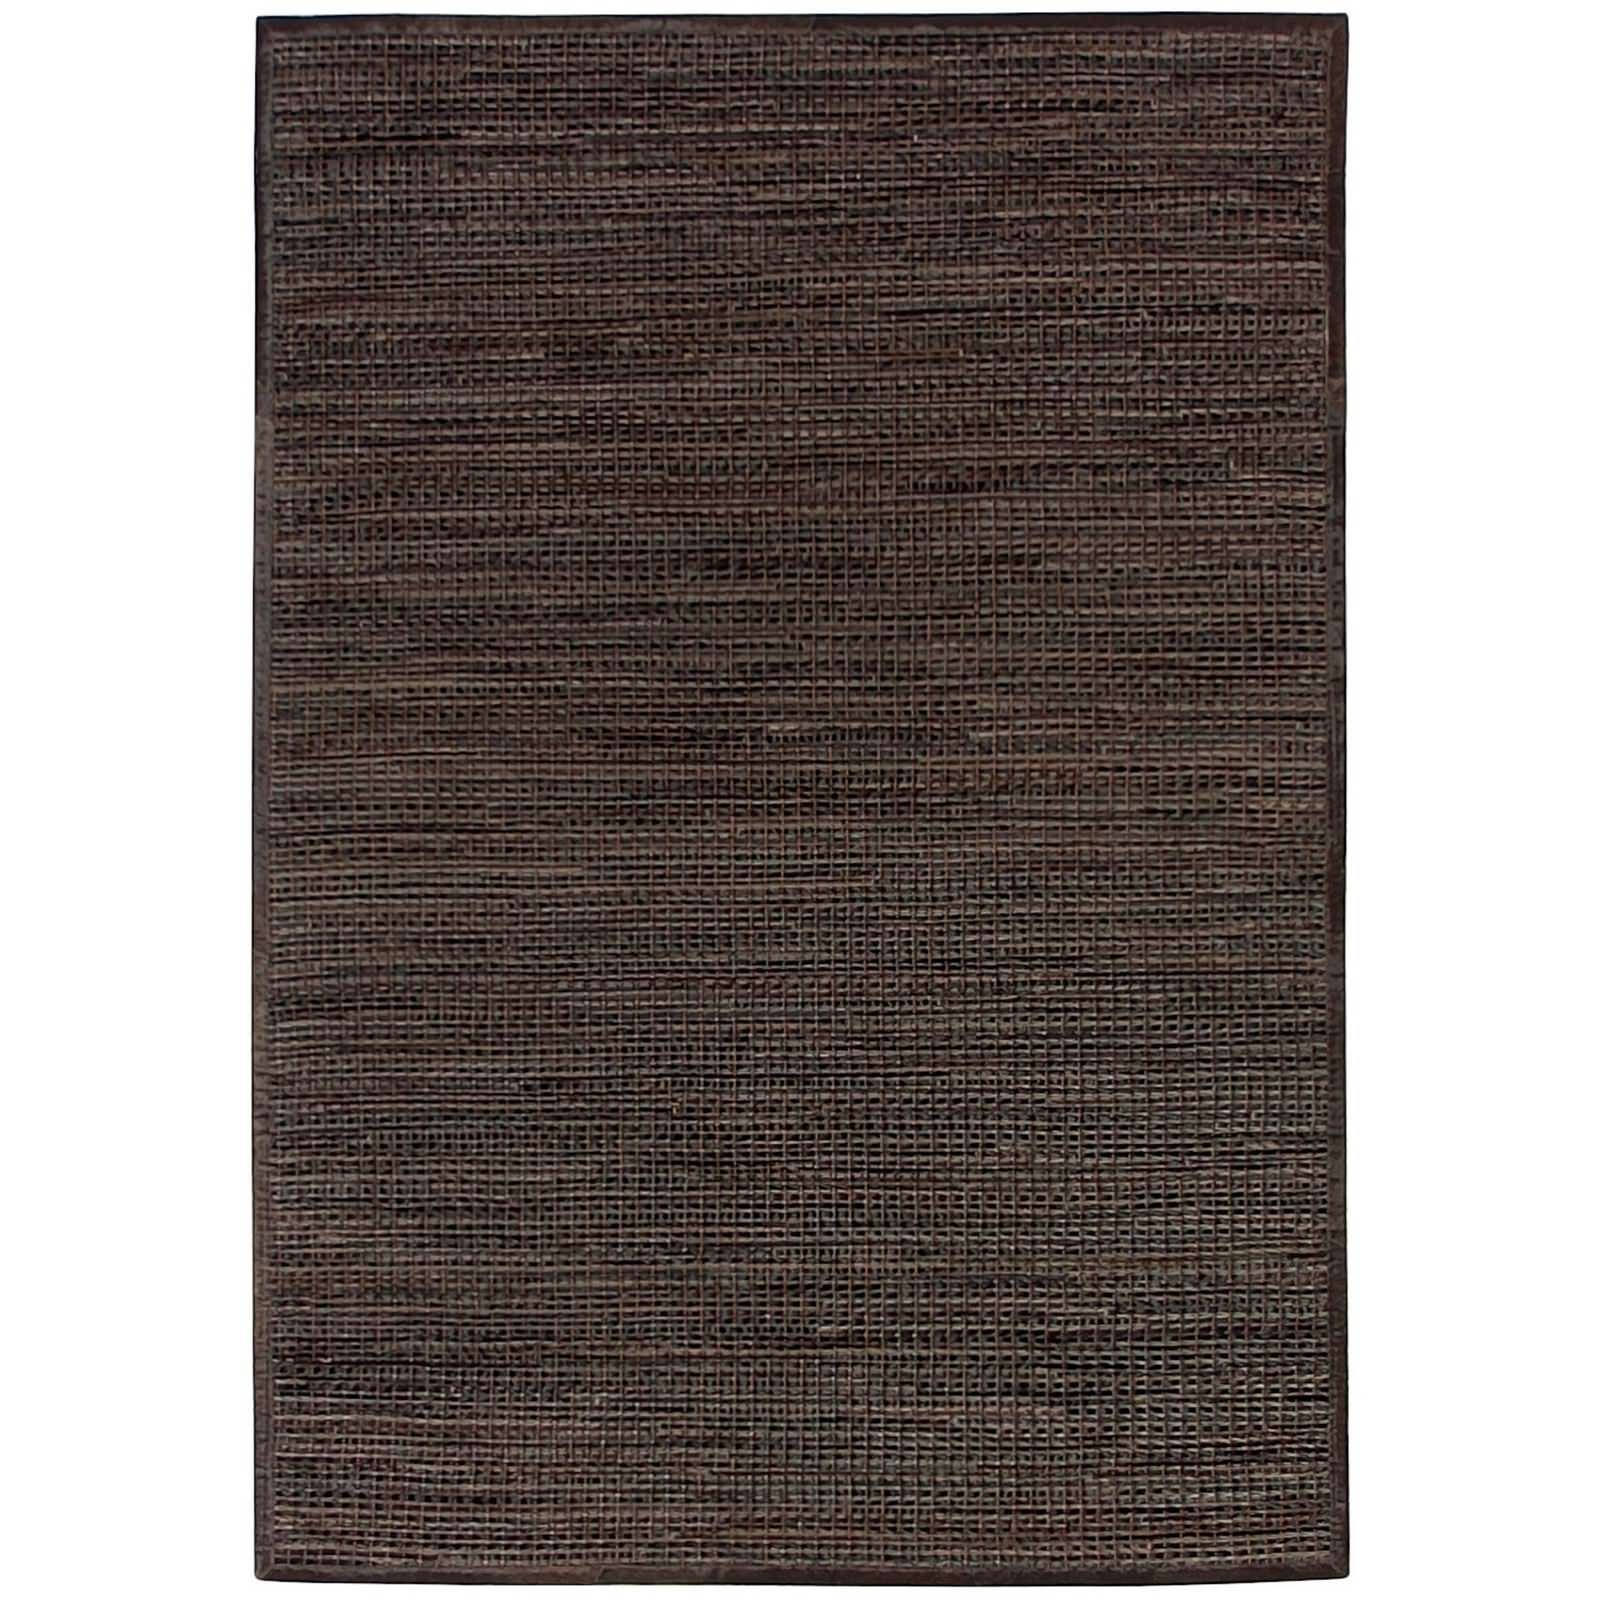 Chase Handwoven Hide & Leather Rug, 160x230cm, Cocoa